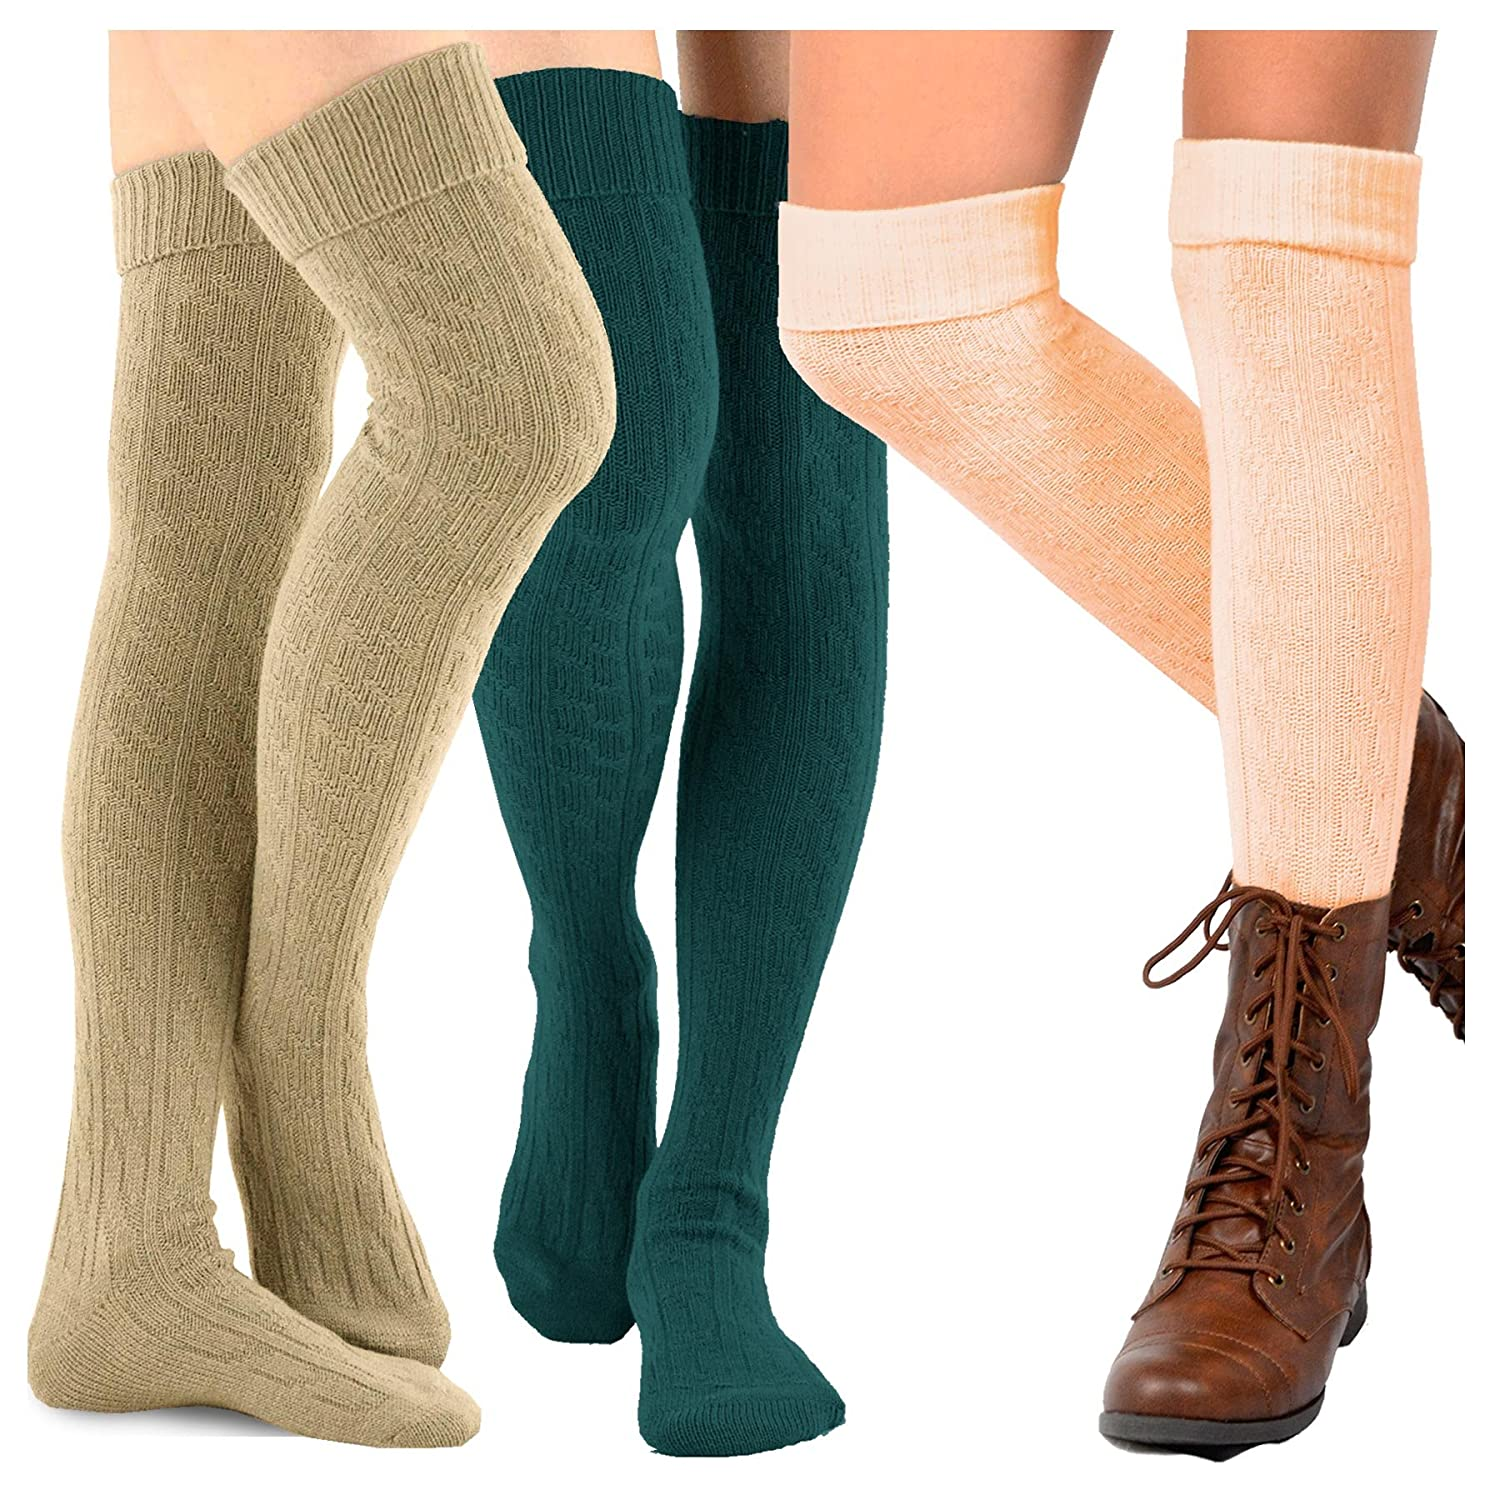 0778e35e187 TeeHee Women s Fashion Over the Knee High Socks - 3 Pair Combo (Cable Cuff  Basic Combo) at Amazon Women s Clothing store